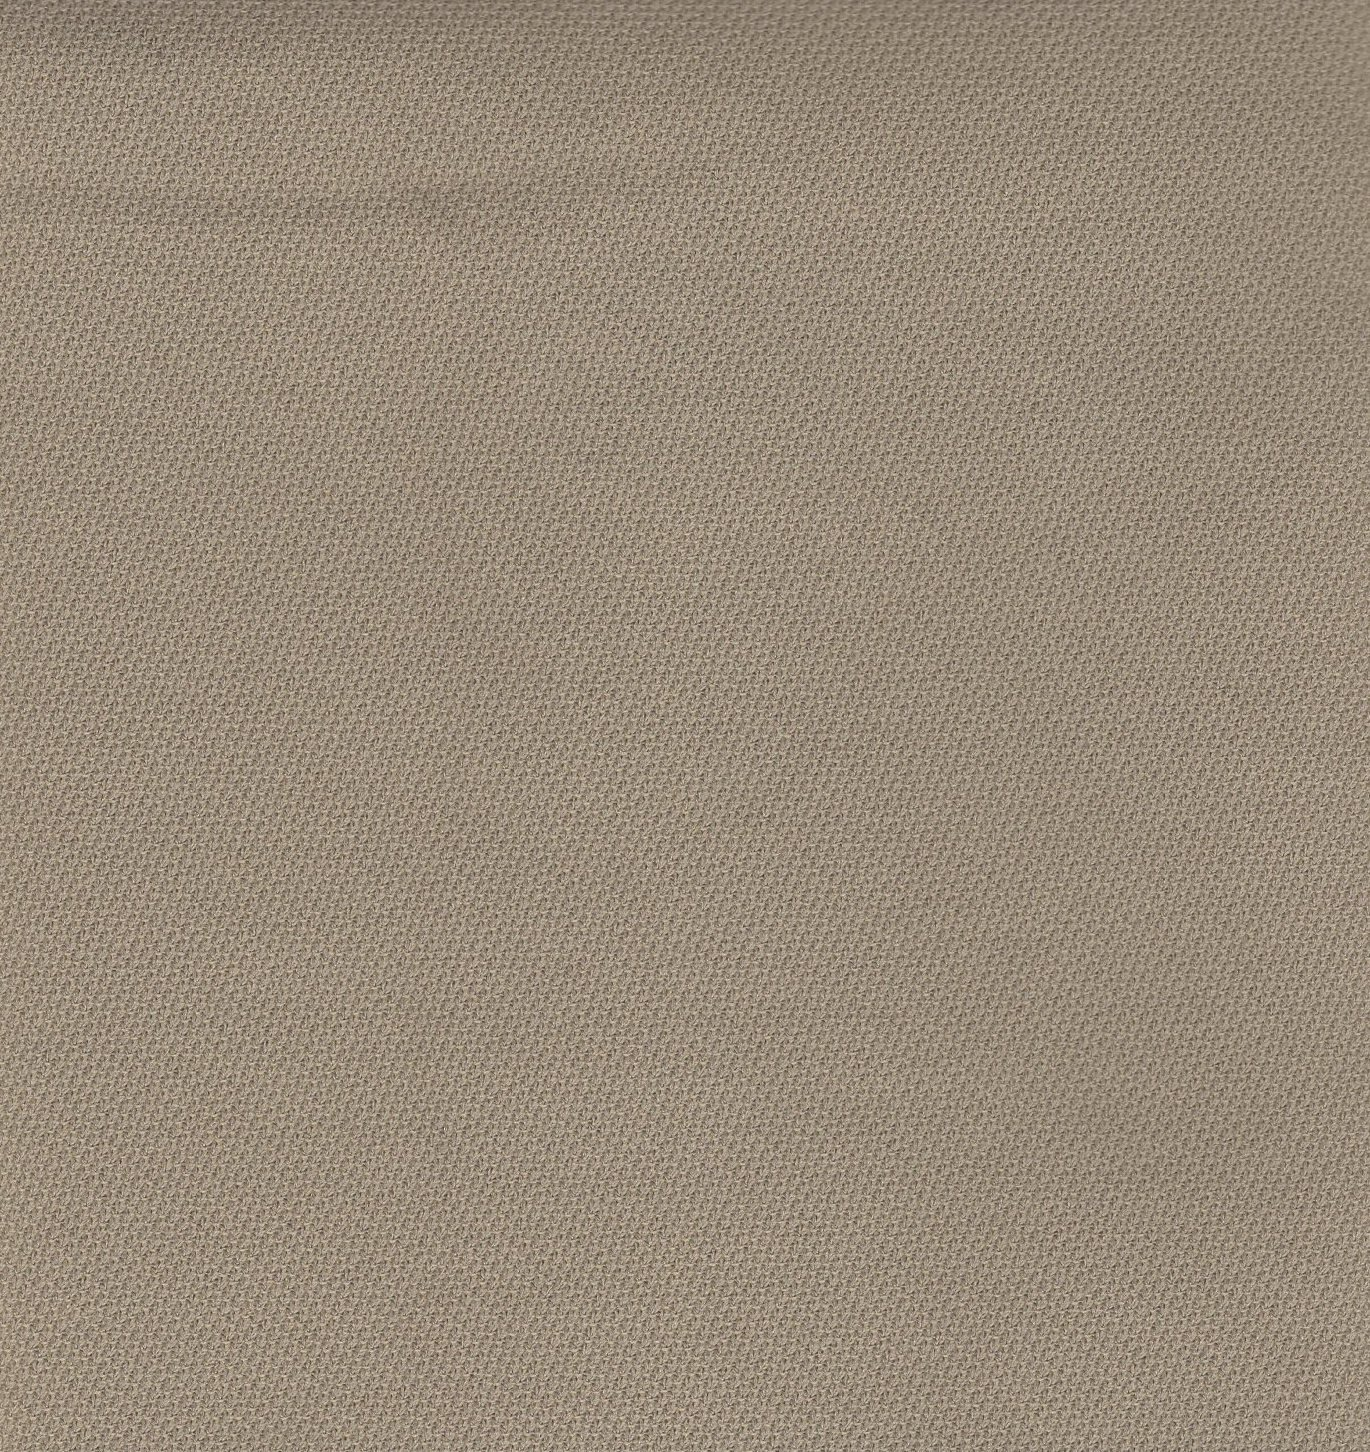 Headliner Doctor foam backed repair fabric compatible with ACURA TL-LIGHT IVORY-2004 and up (Headliner Only(2 yards))